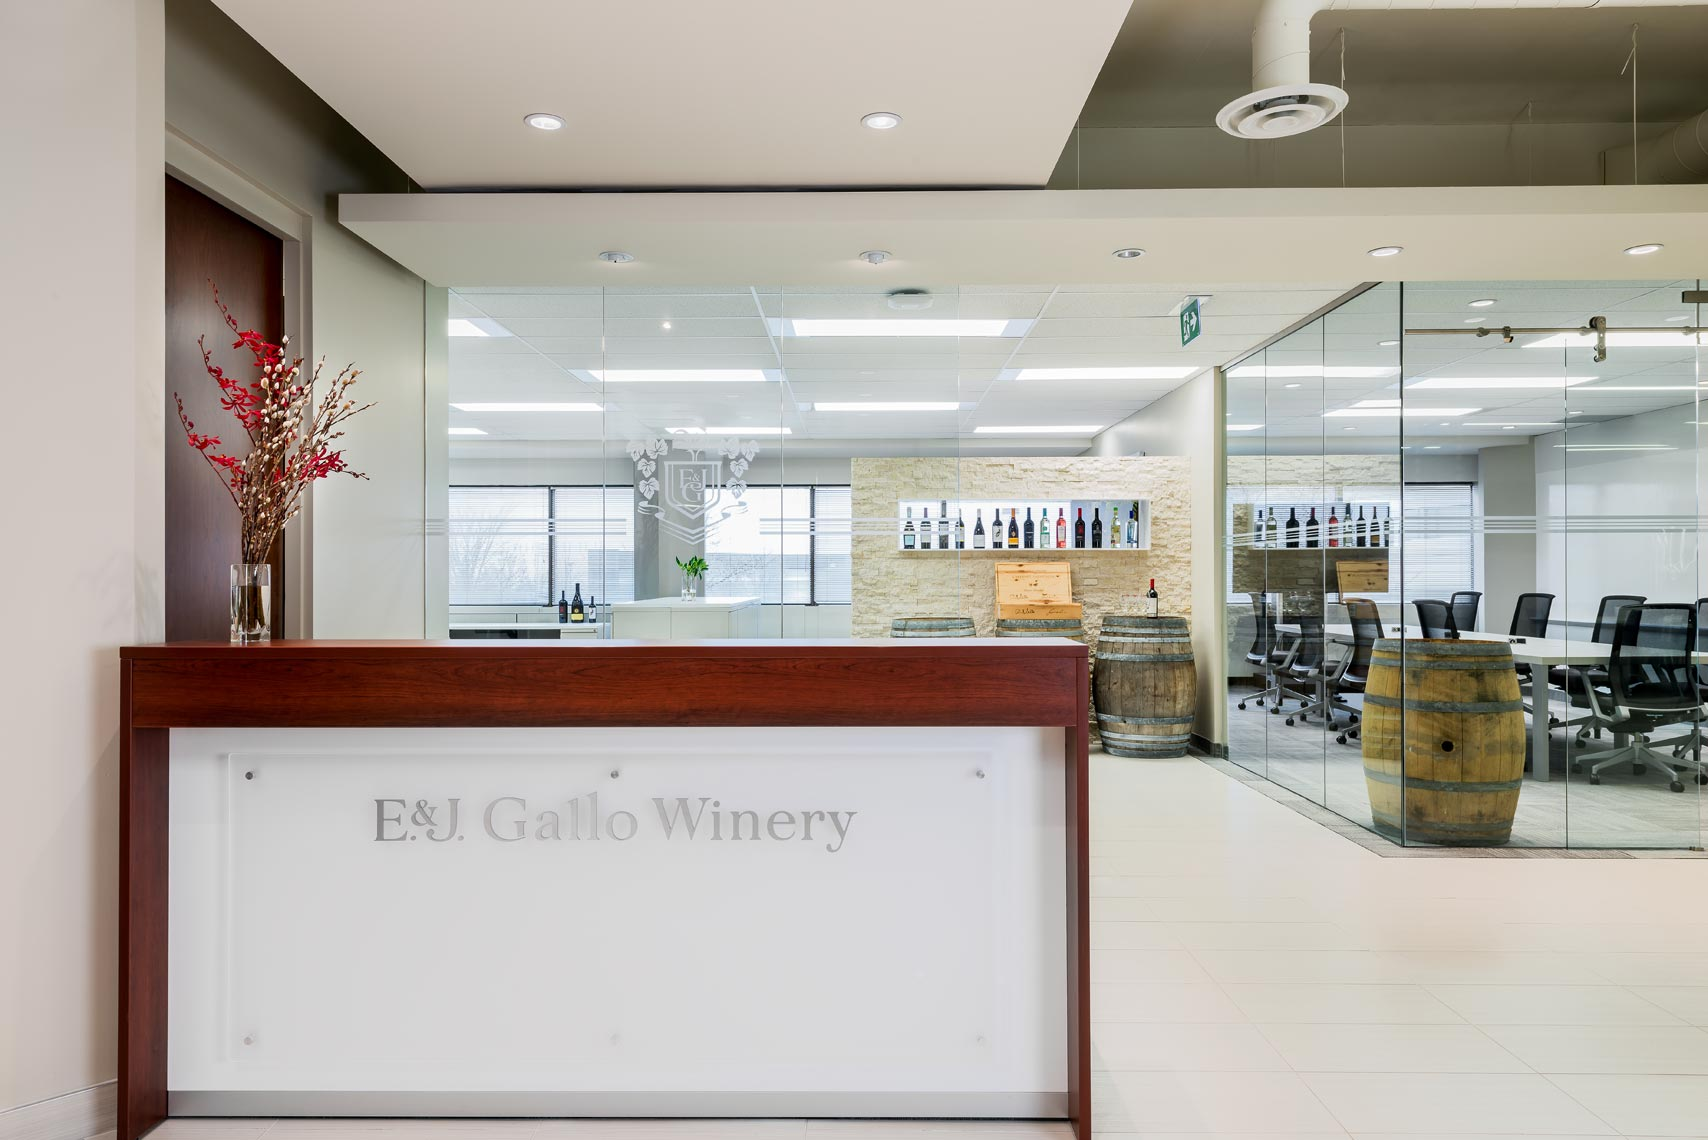 E&J Gallo Winery - CVB